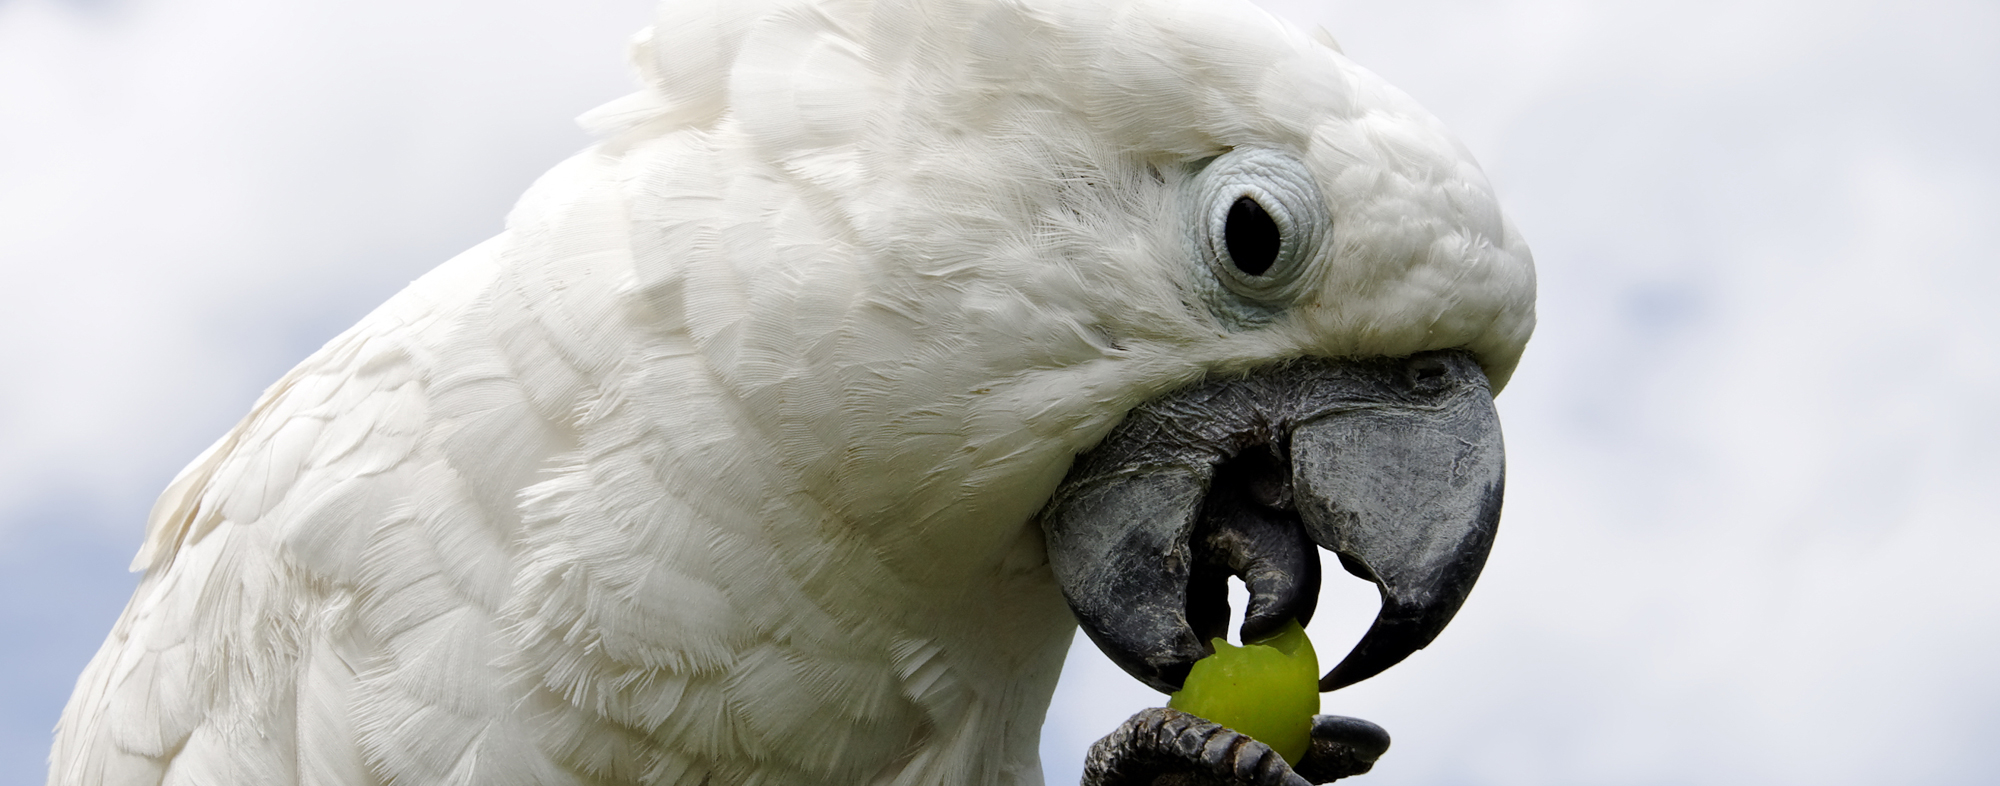 Caring for your bird means feeding them a diet containing fruits